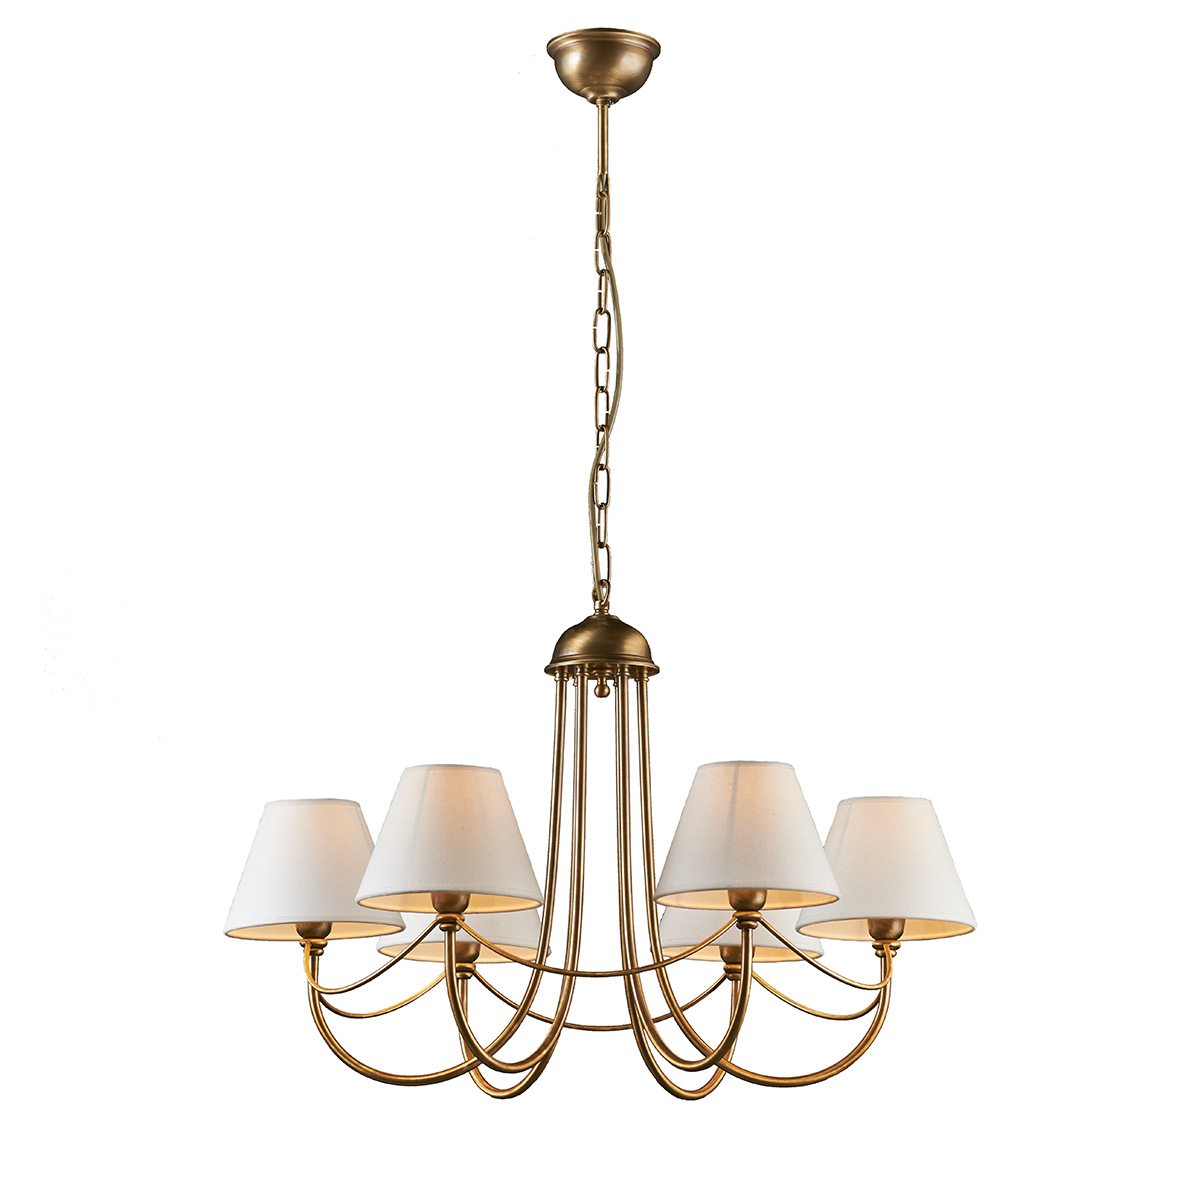 6 Bulb Chandelier With Shades Gythio Mavros Parts Diagram Gythio59508 6k